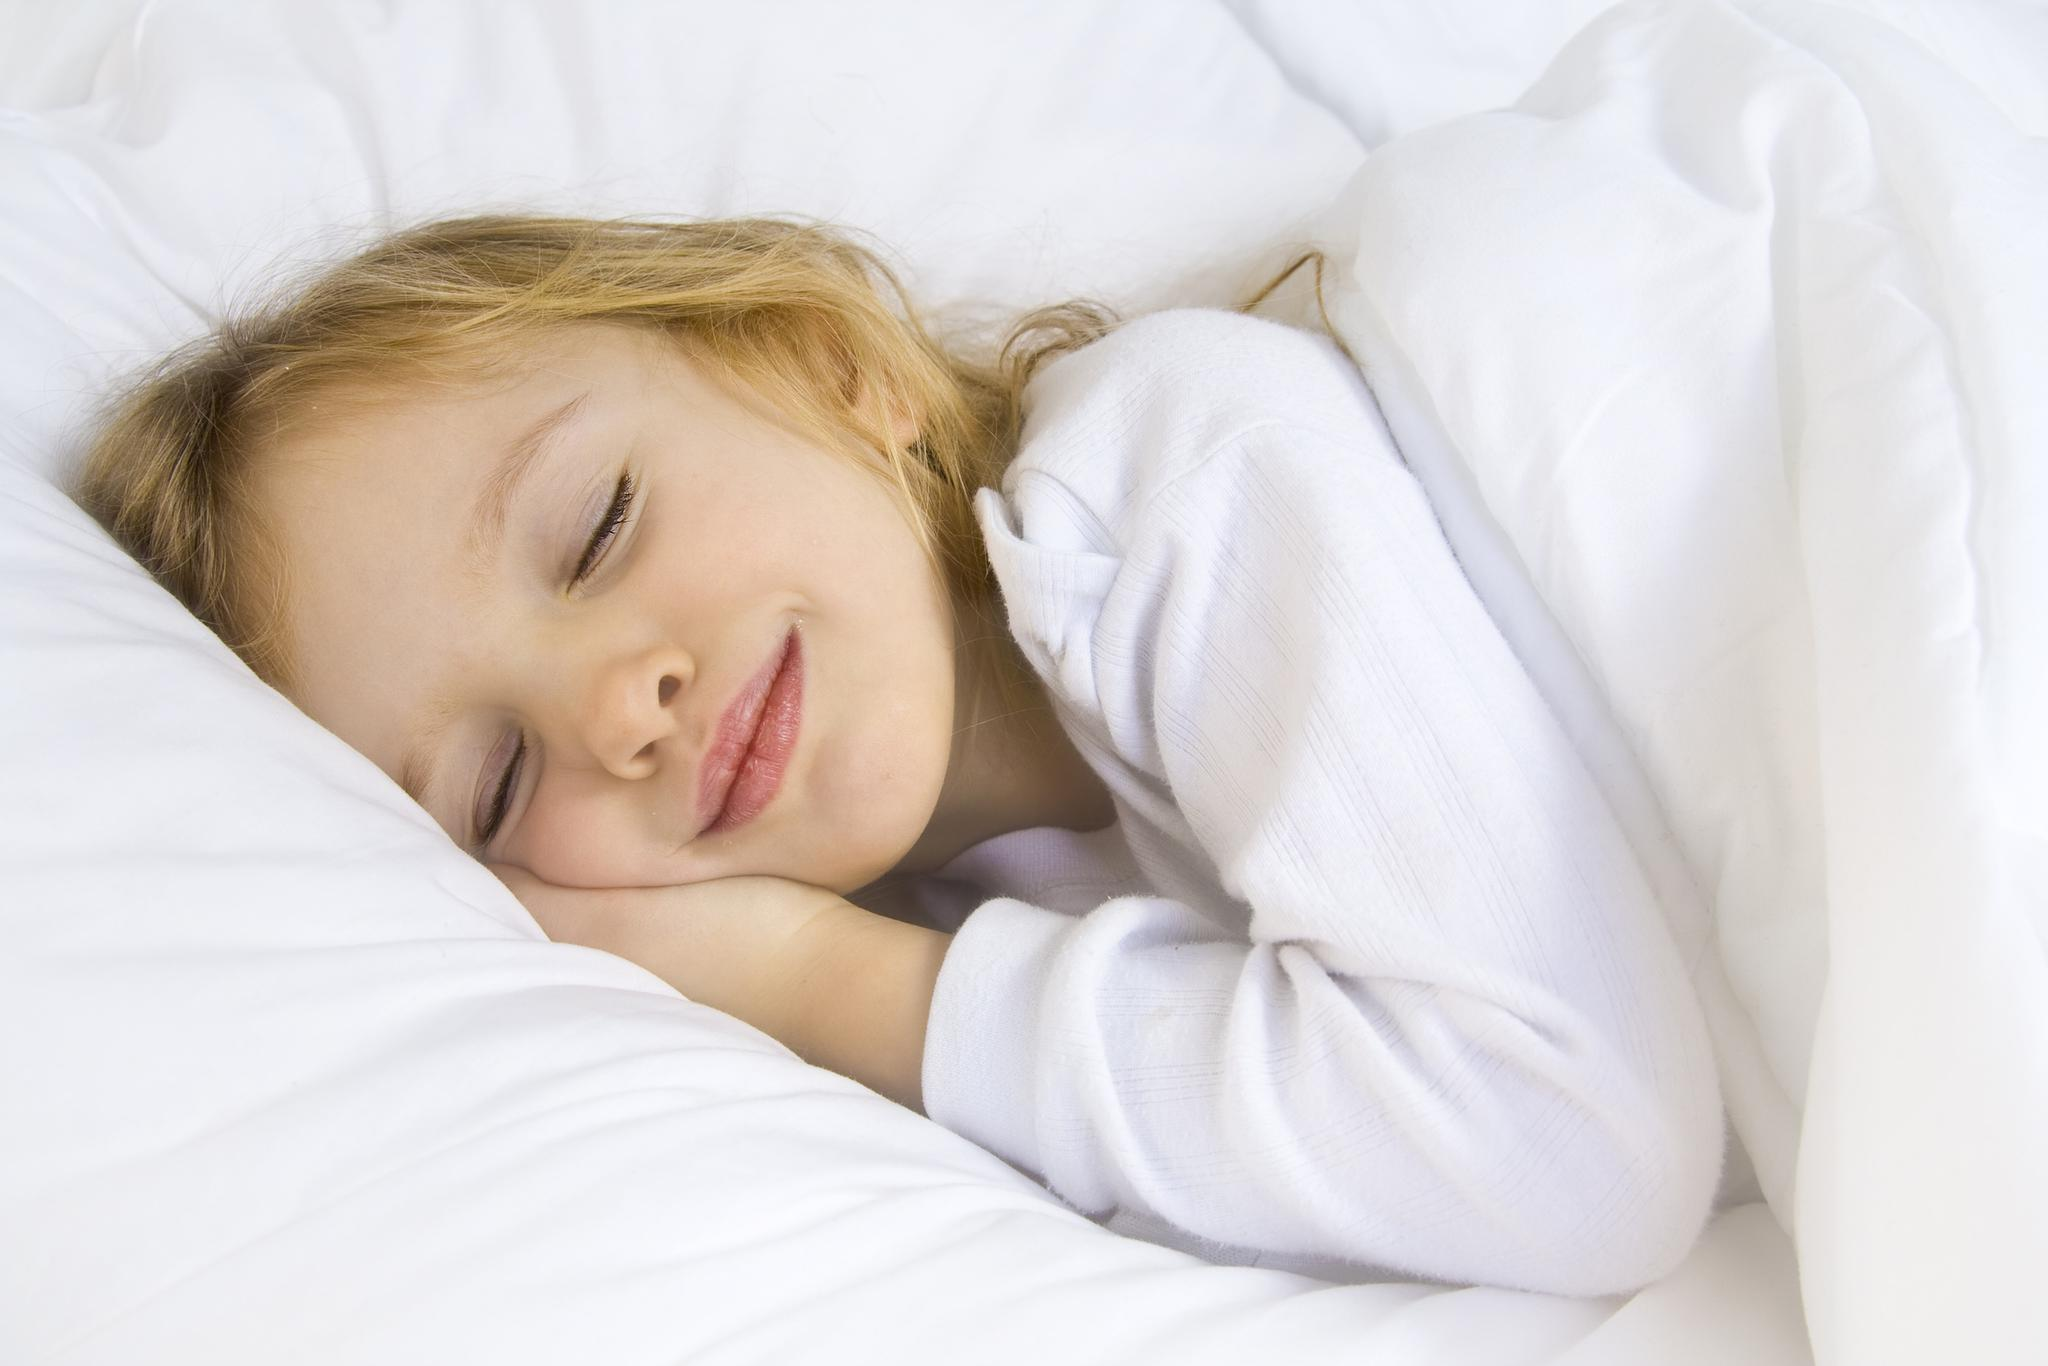 Children's Sleep Guide - MattressHelp.org